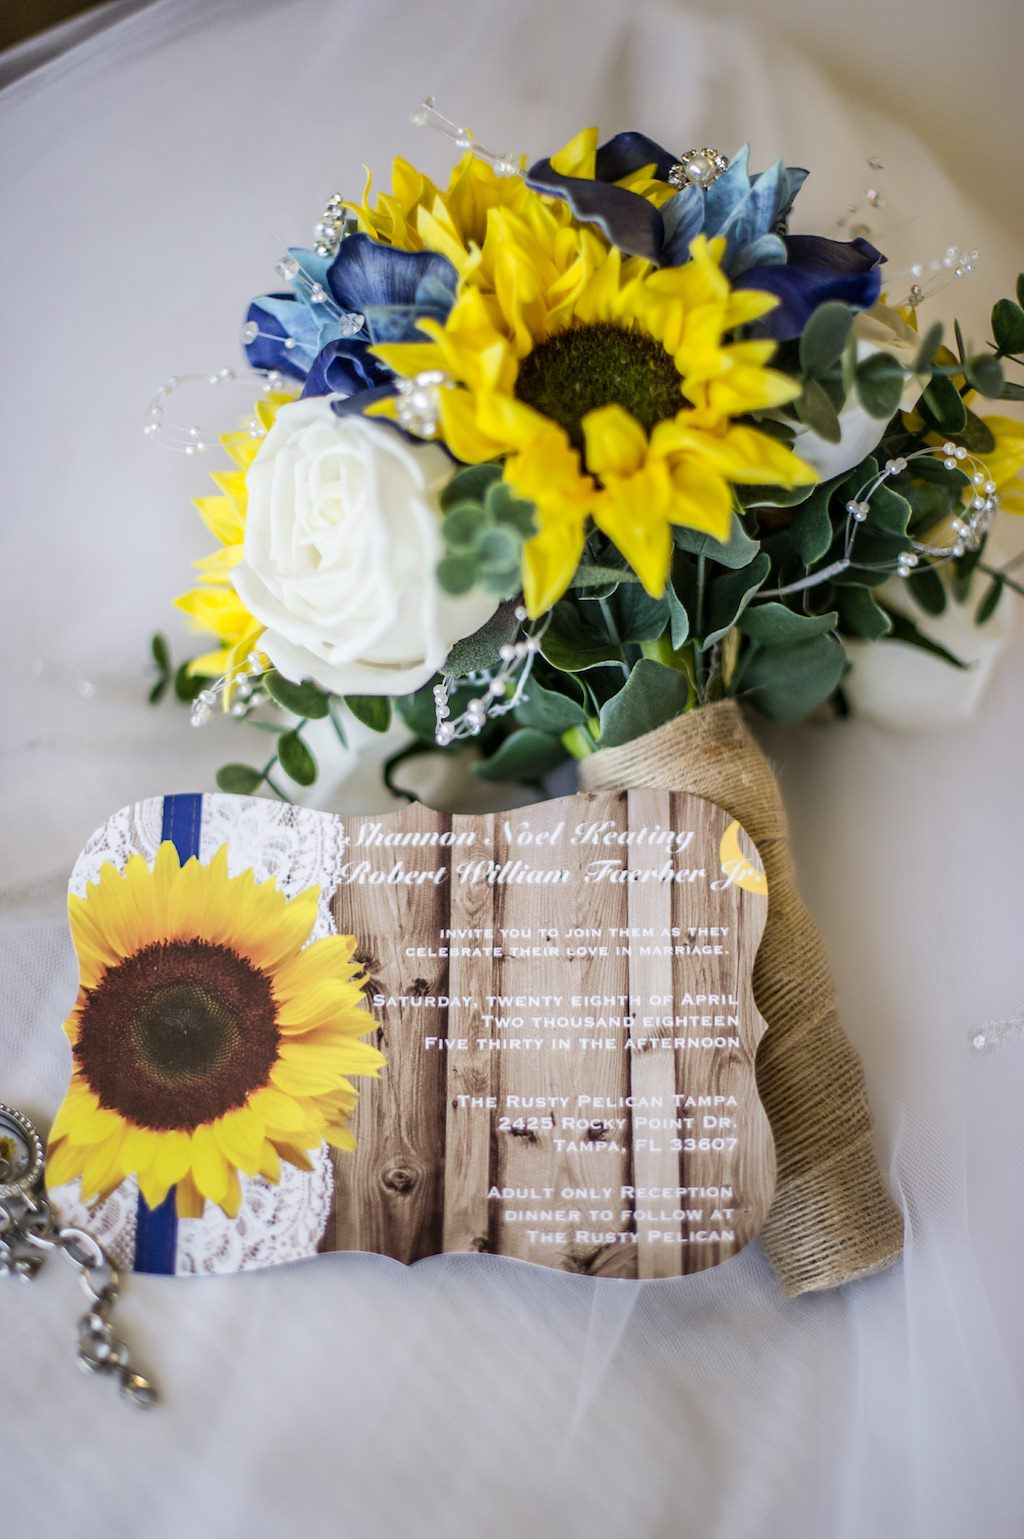 Rustic yellow sunflower wedding invitation and yellow sunflower rustic yellow sunflower wedding invitation and yellow sunflower blue white rose and greenery floral bouquet wrapped in burlap tampa bay photographer izmirmasajfo